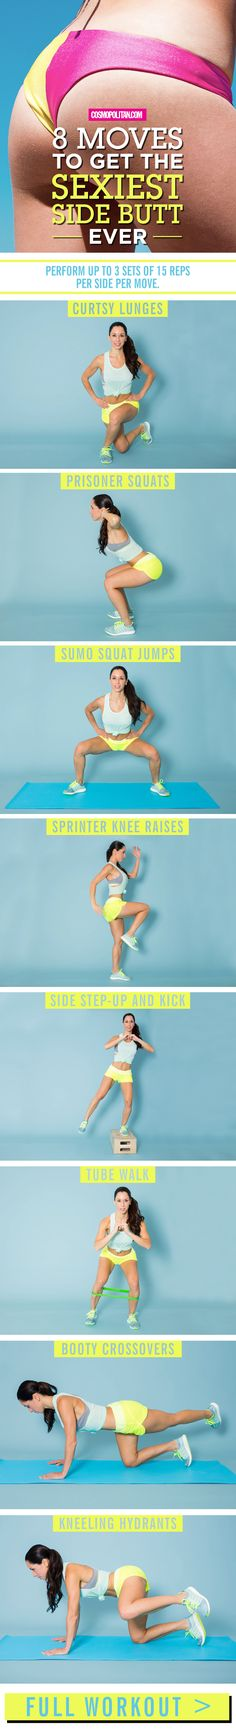 8 Moves to Get the Sexiest Side Butt Ever - Turn your profile into a whoa-file.